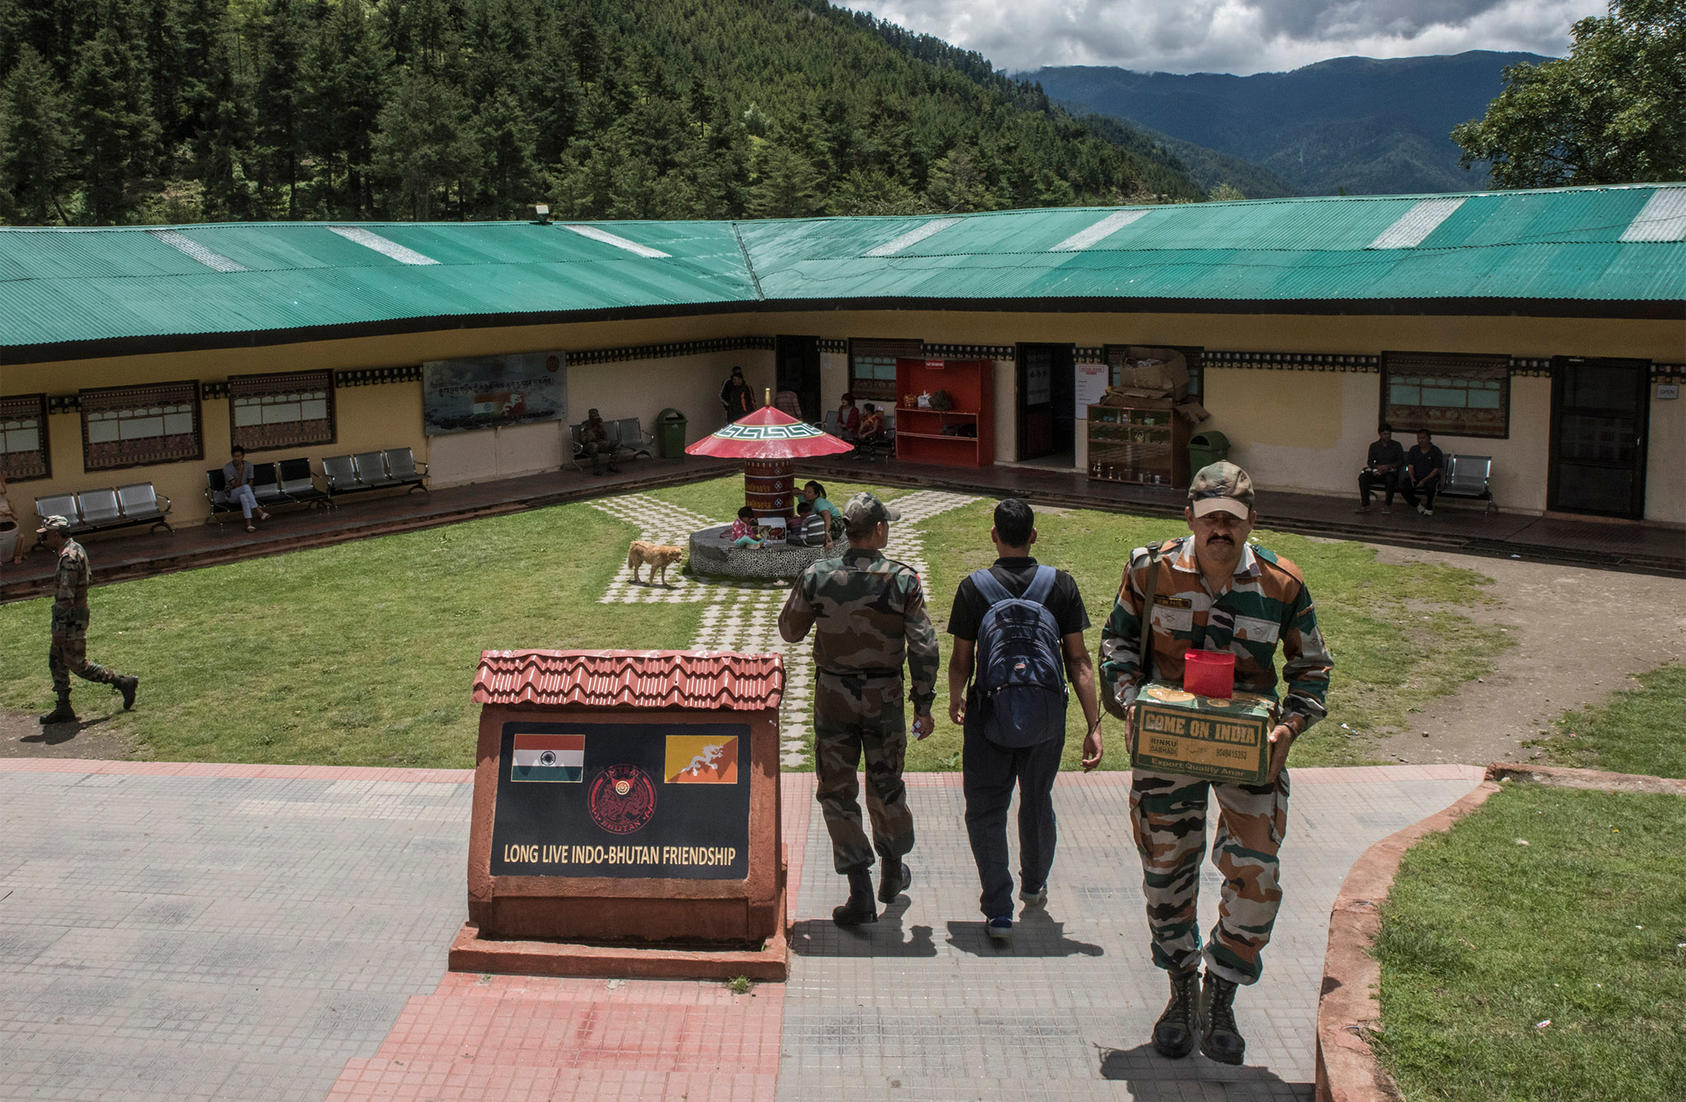 An Indian soldier at a military facility in Haa, Bhutan, near a border area claimed by both India and China. Aug. 3, 2017. (Gilles Sabrie/The New York Times)